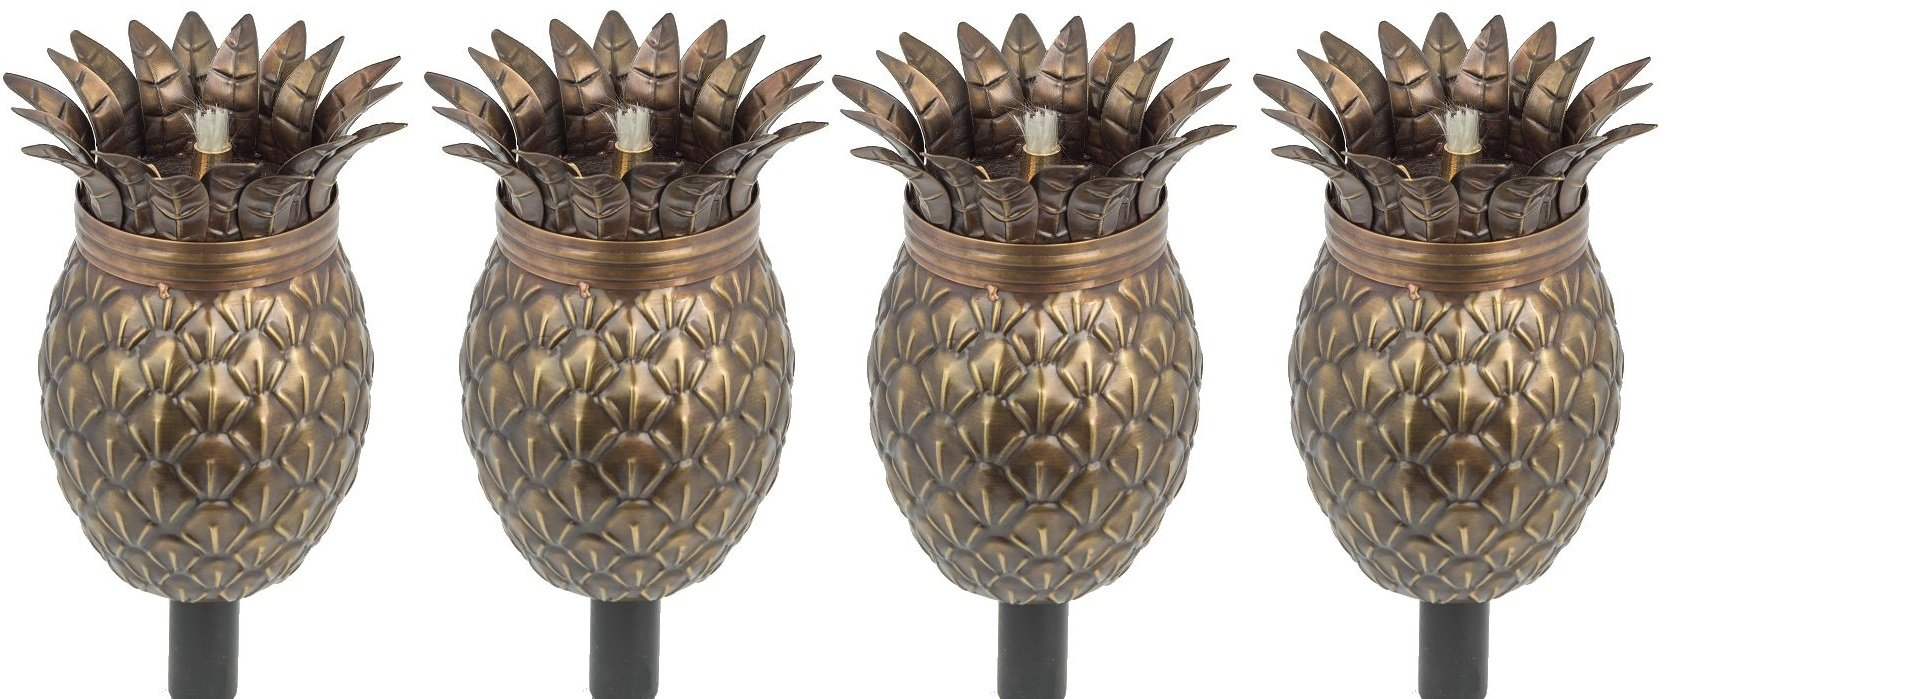 Legends Maui Tiki Torches with Poles, Set-of-4, (Bronze Pineapple) by Legends Direct